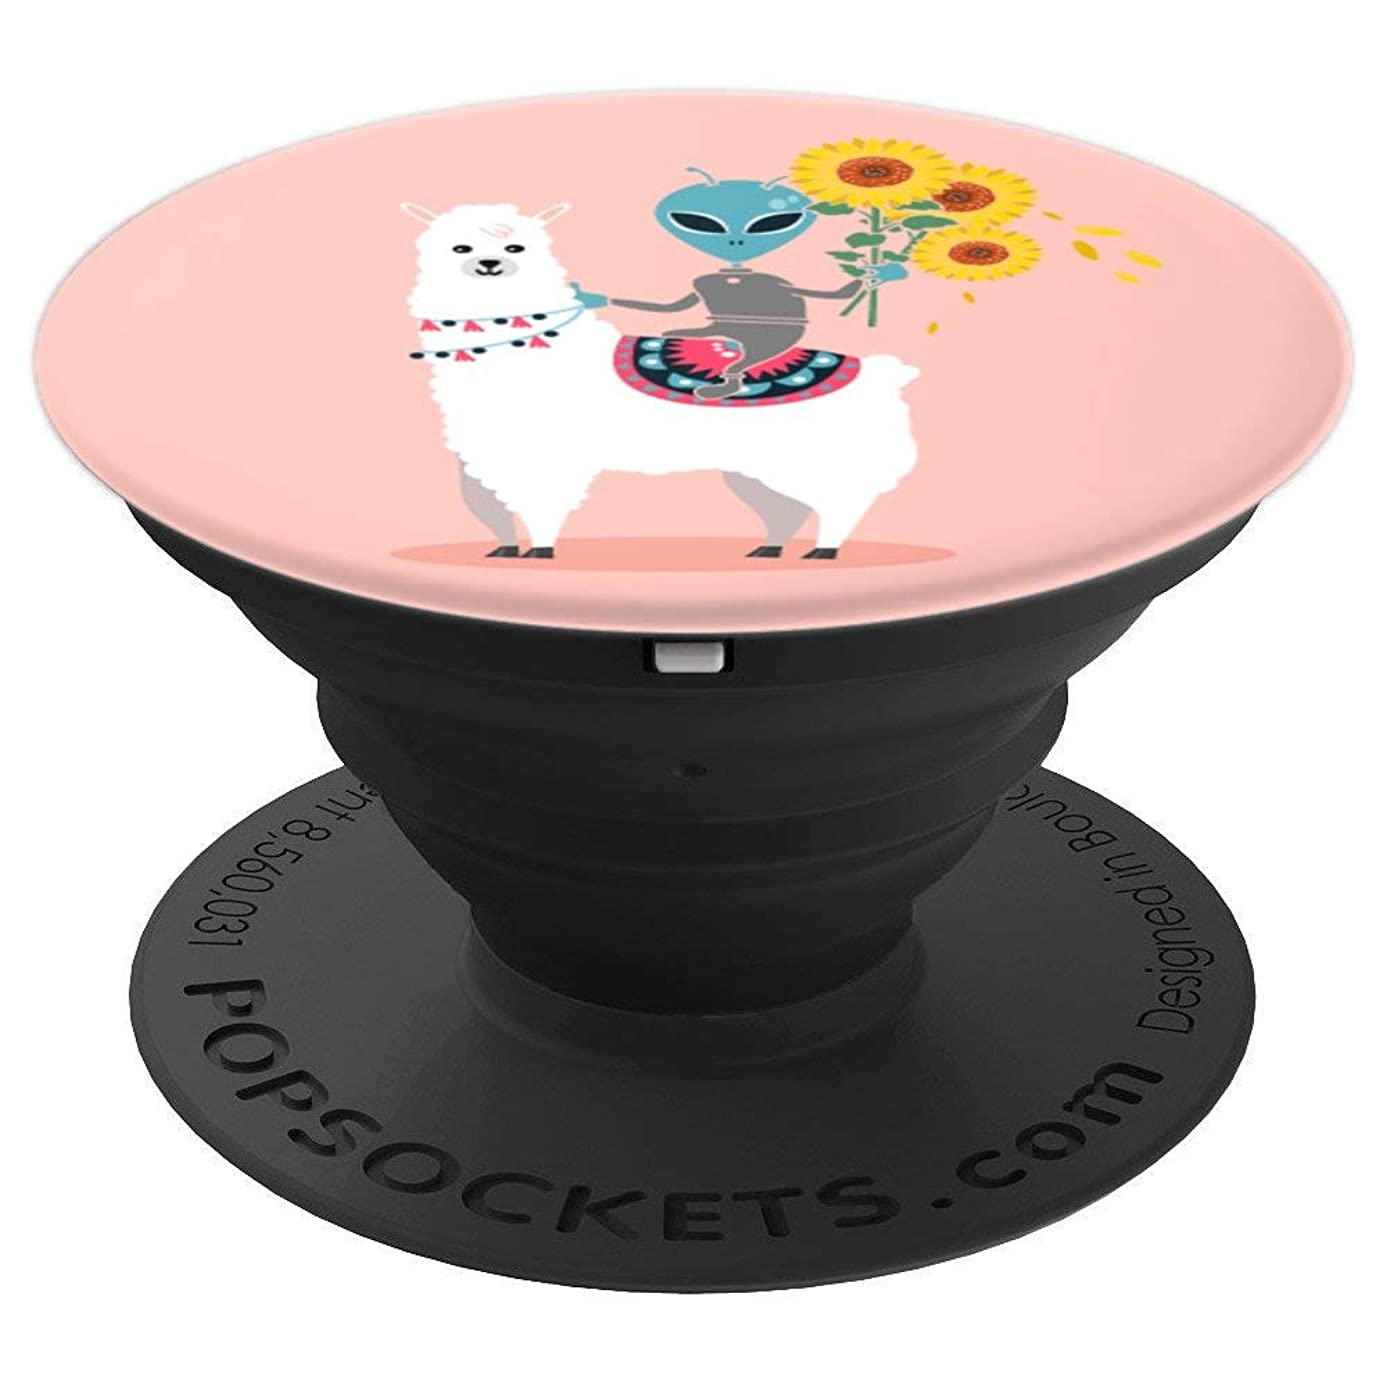 Sunflower Pop-Socket Llama Alien Rose Cool Cute Gift - PopSockets Grip and Stand for Phones and Tablets